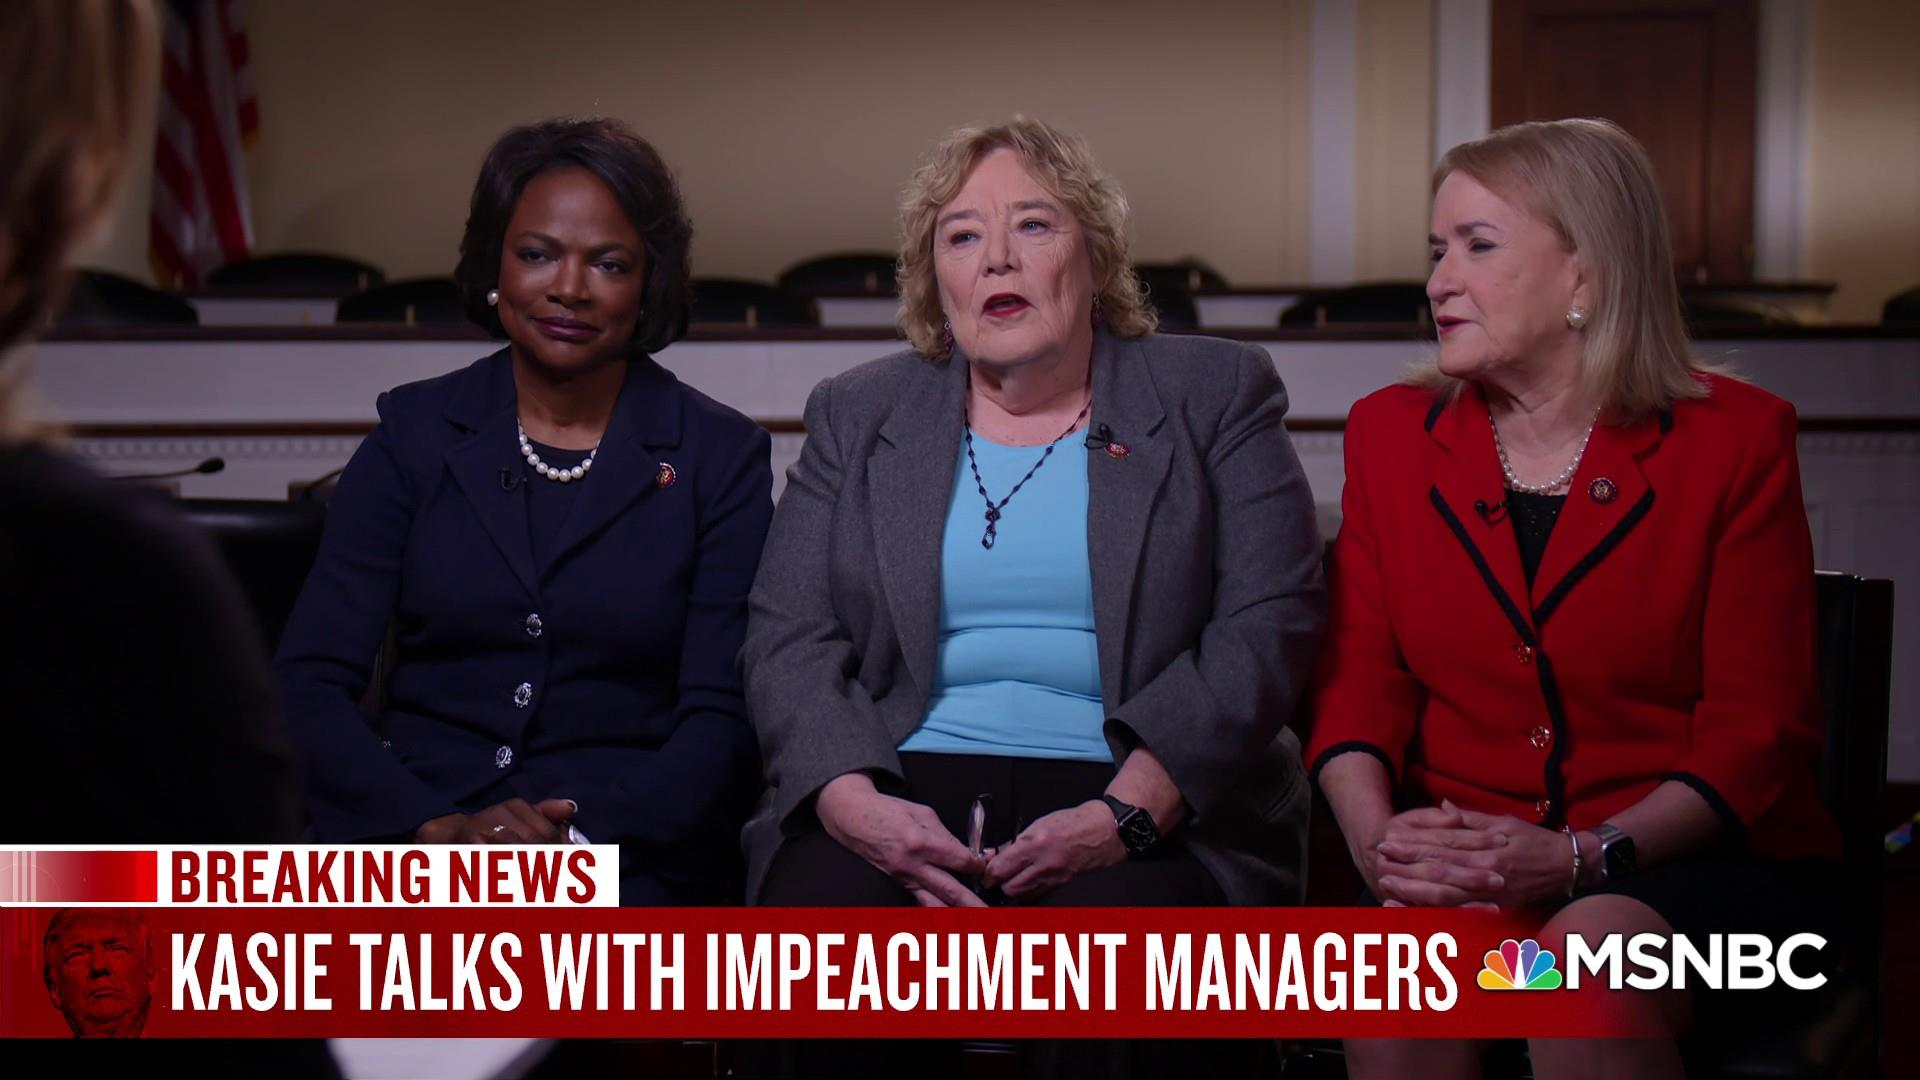 Kasie Hunt's exclusive interview with first-ever female impeachment managers